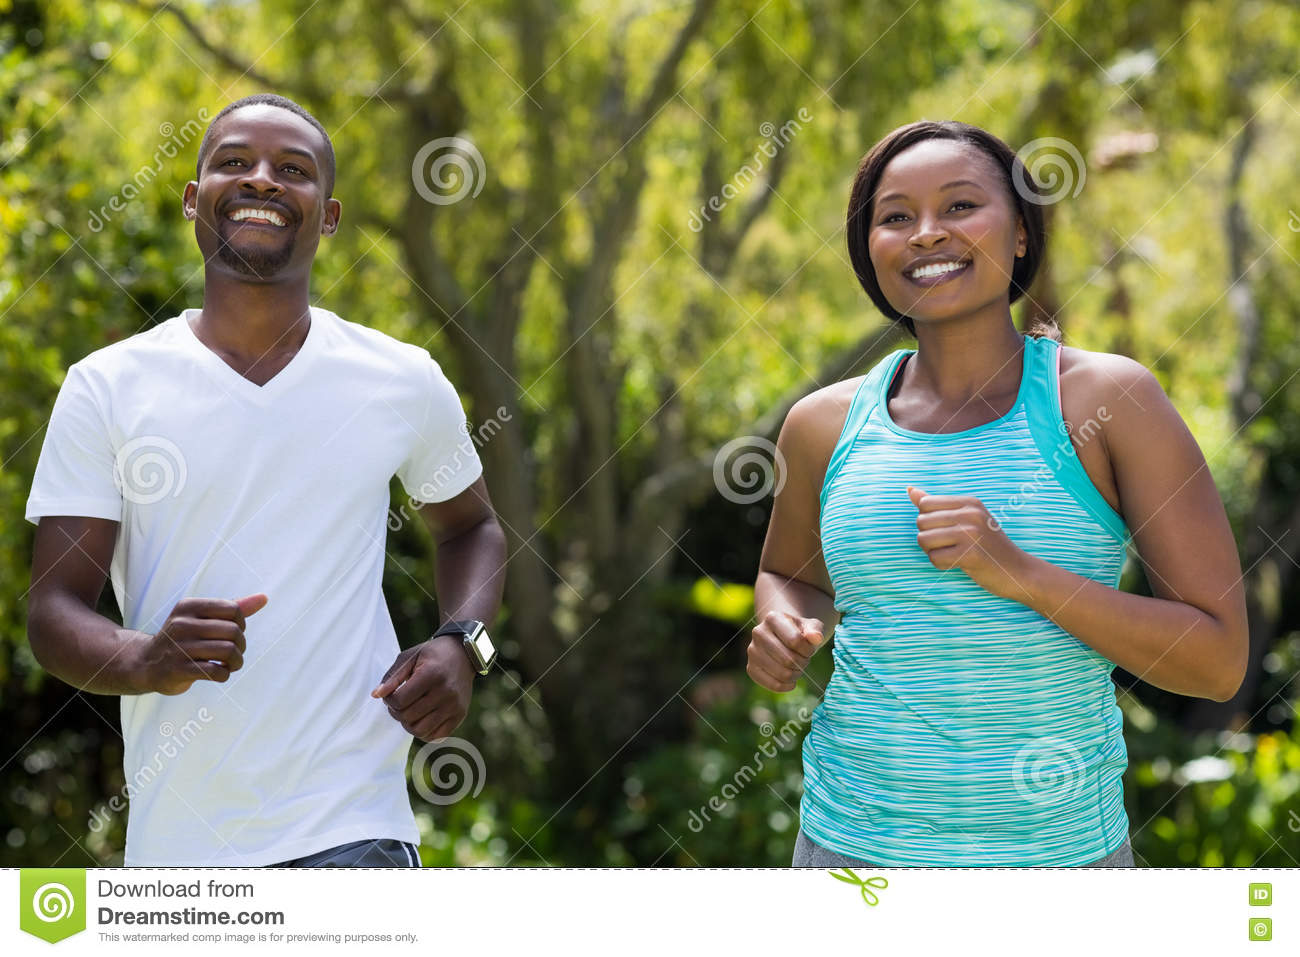 Couple happy posing together